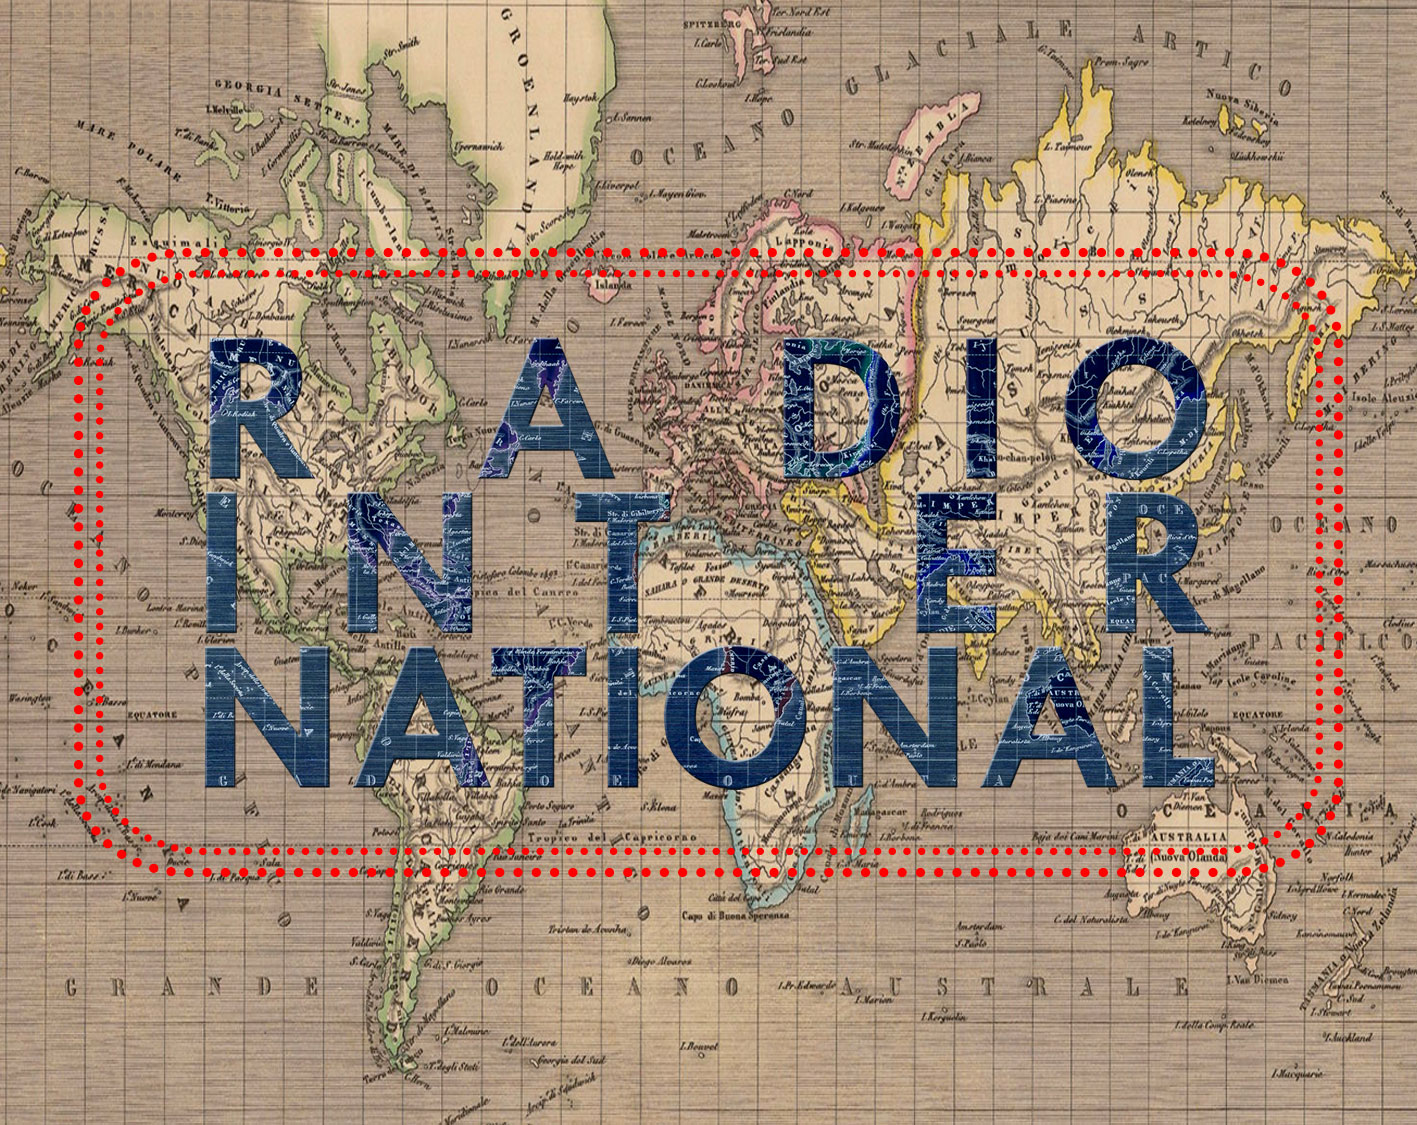 "<font size=""4""><strong>in scena: RADIO INTERNATIONAL 